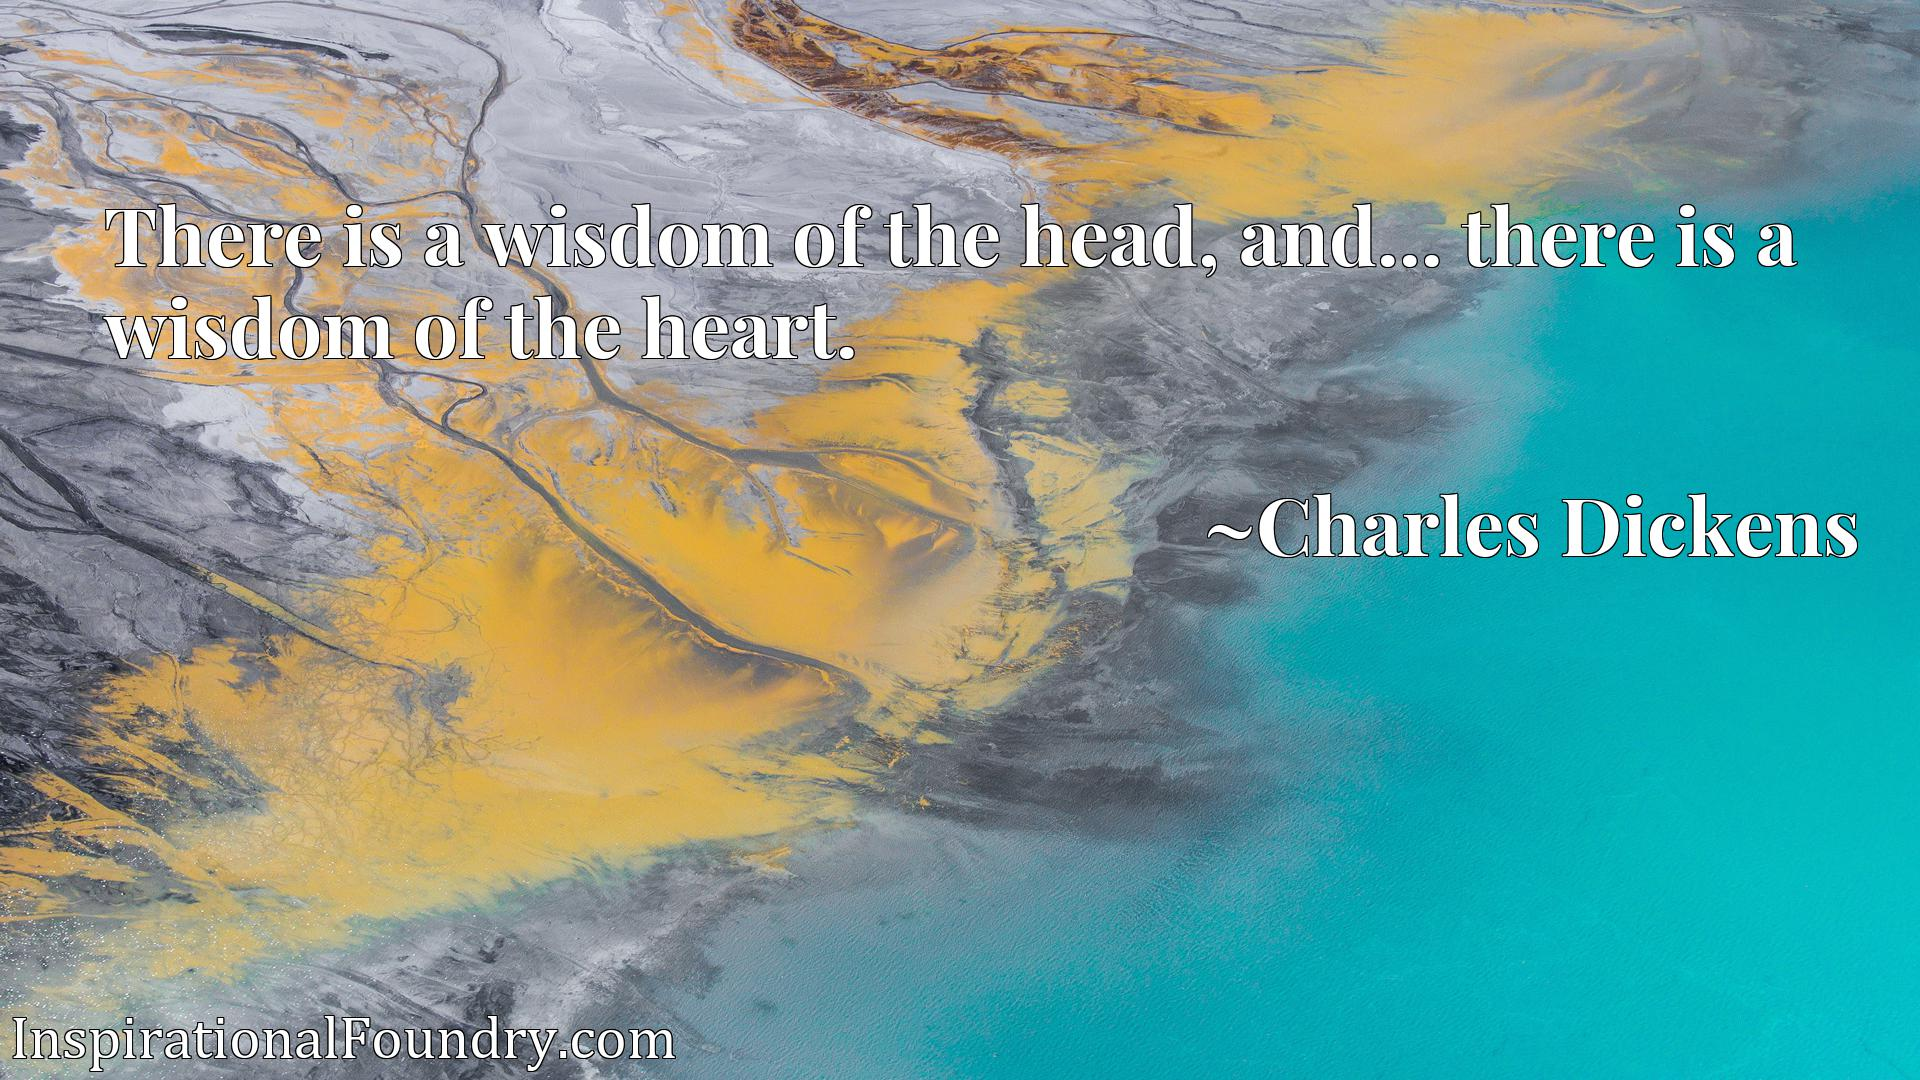 There is a wisdom of the head, and... there is a wisdom of the heart.